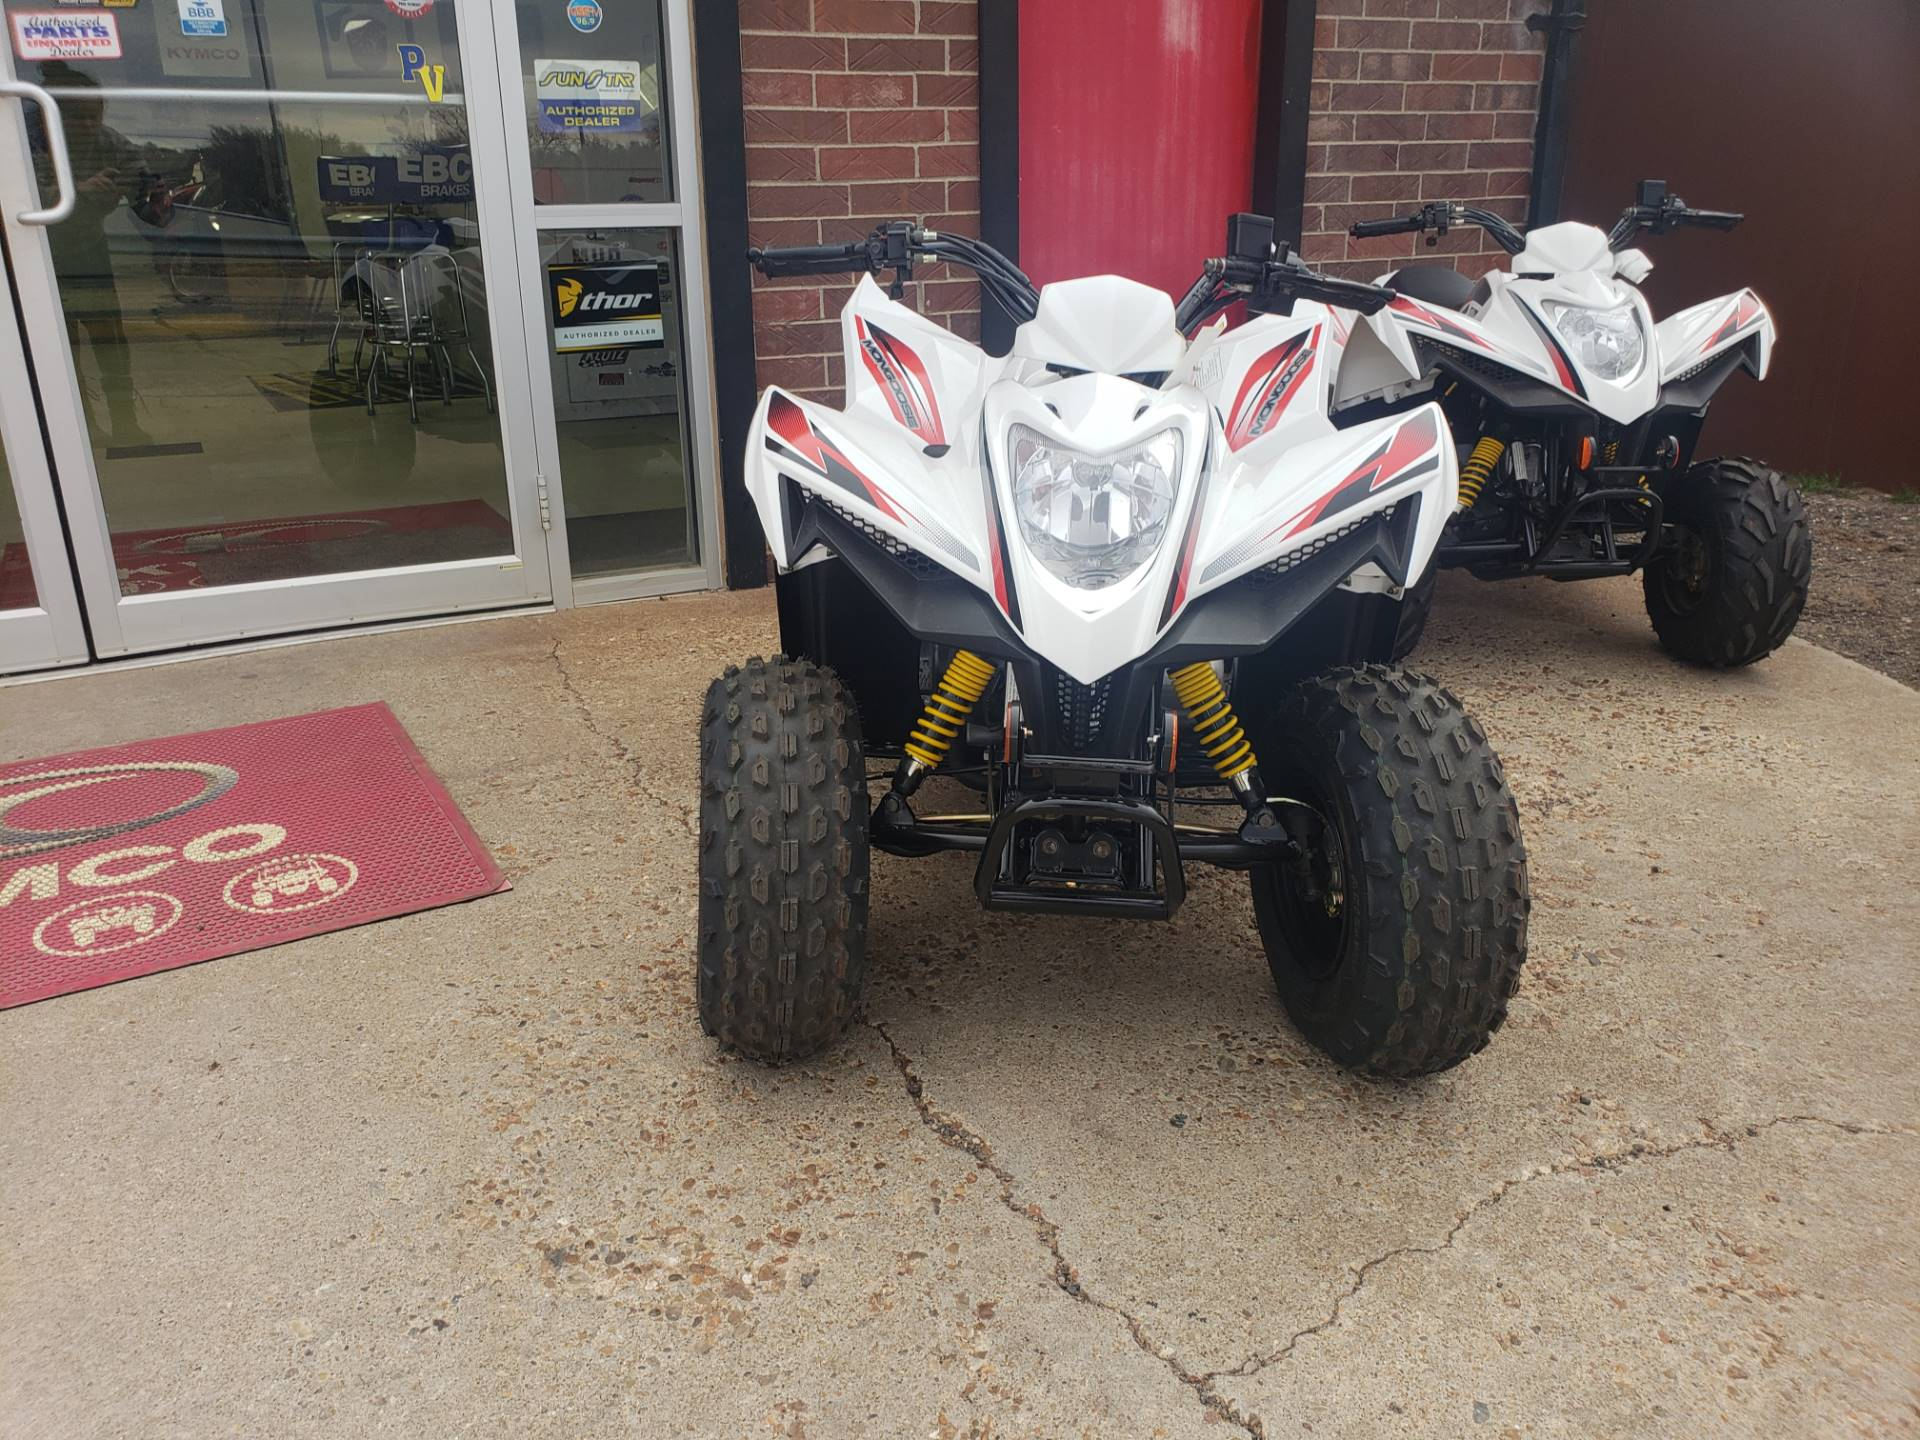 2019 Kymco Mongoose 90s in Amarillo, Texas